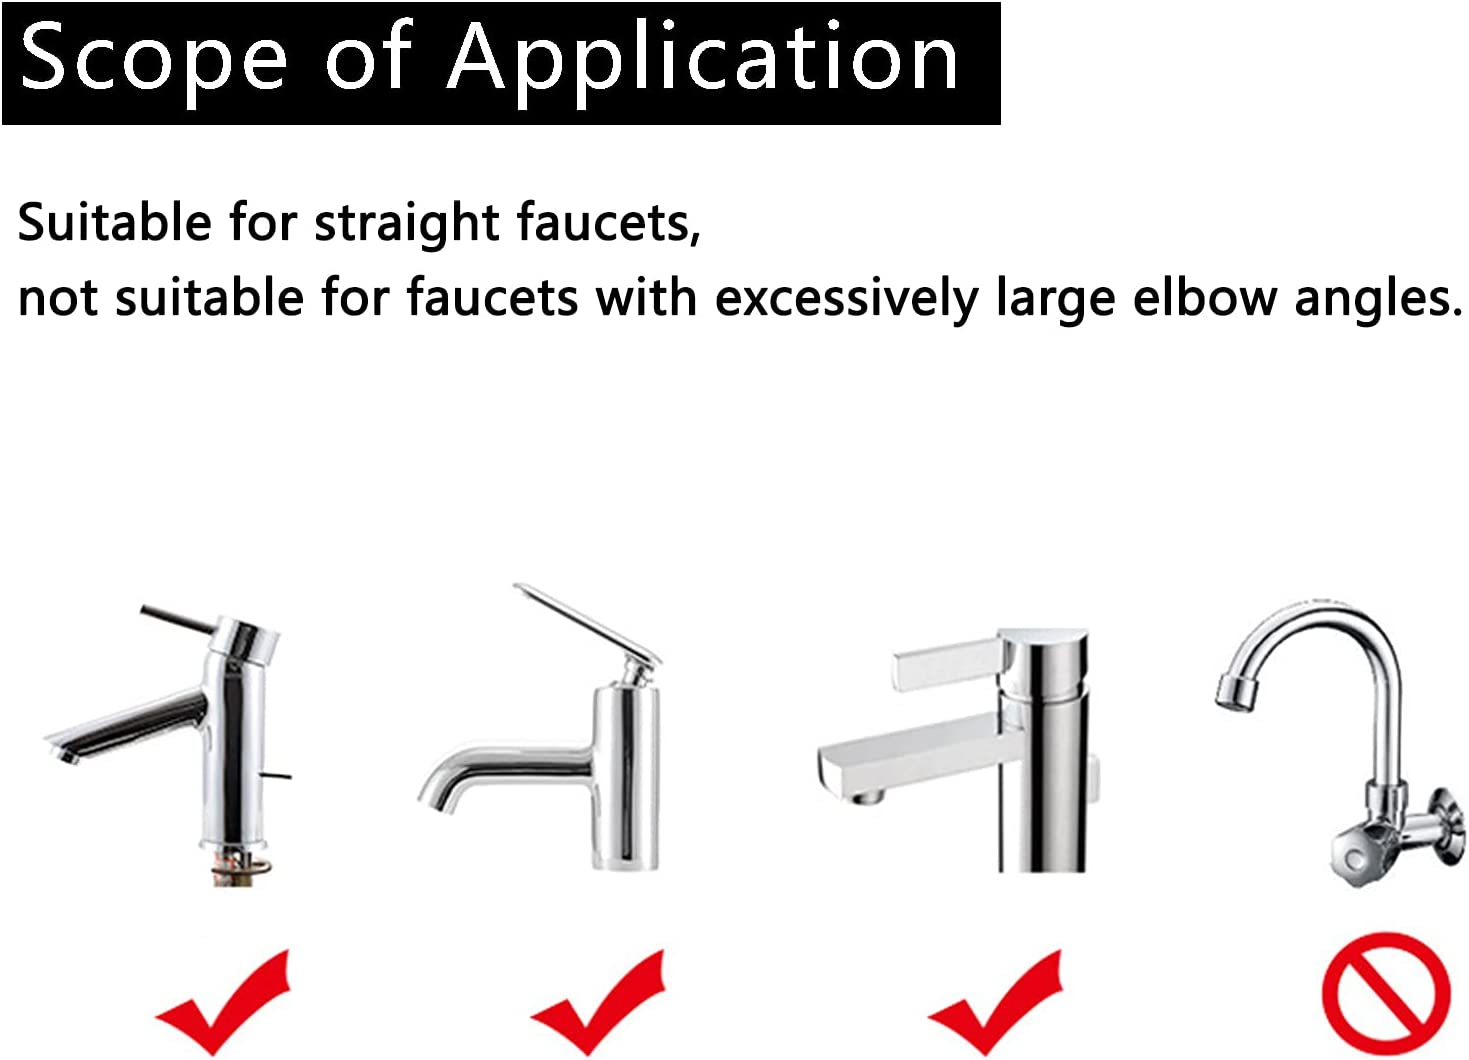 2 Pcs Silicone Faucet Extender, Sink Handle Extender - Child Helper Faucets Handle Hose Adapter, Kids Water Reach Faucet Rubber Hand Washing Bathroom Accessory Kitchen Gift Household Tool